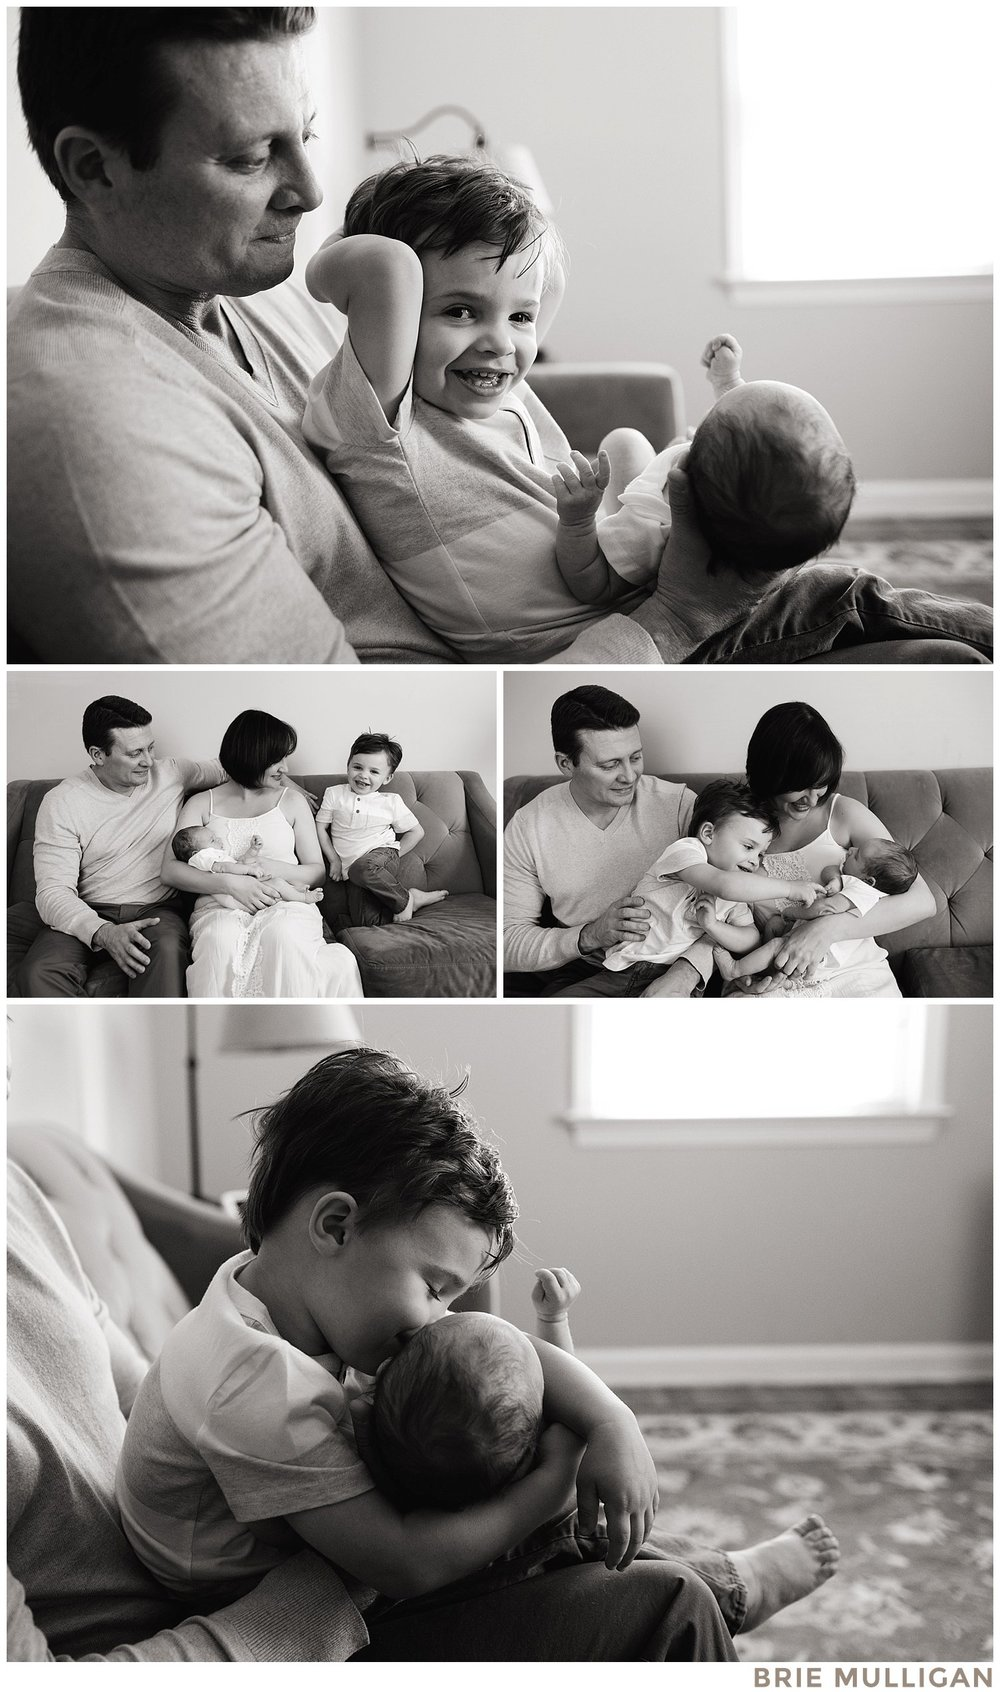 Brie-Mulligan-Family-and-Newborn-Photographer-Montclair-New-Jersey-Northern-NJ-Essex-County-and-NYC_0200.jpg